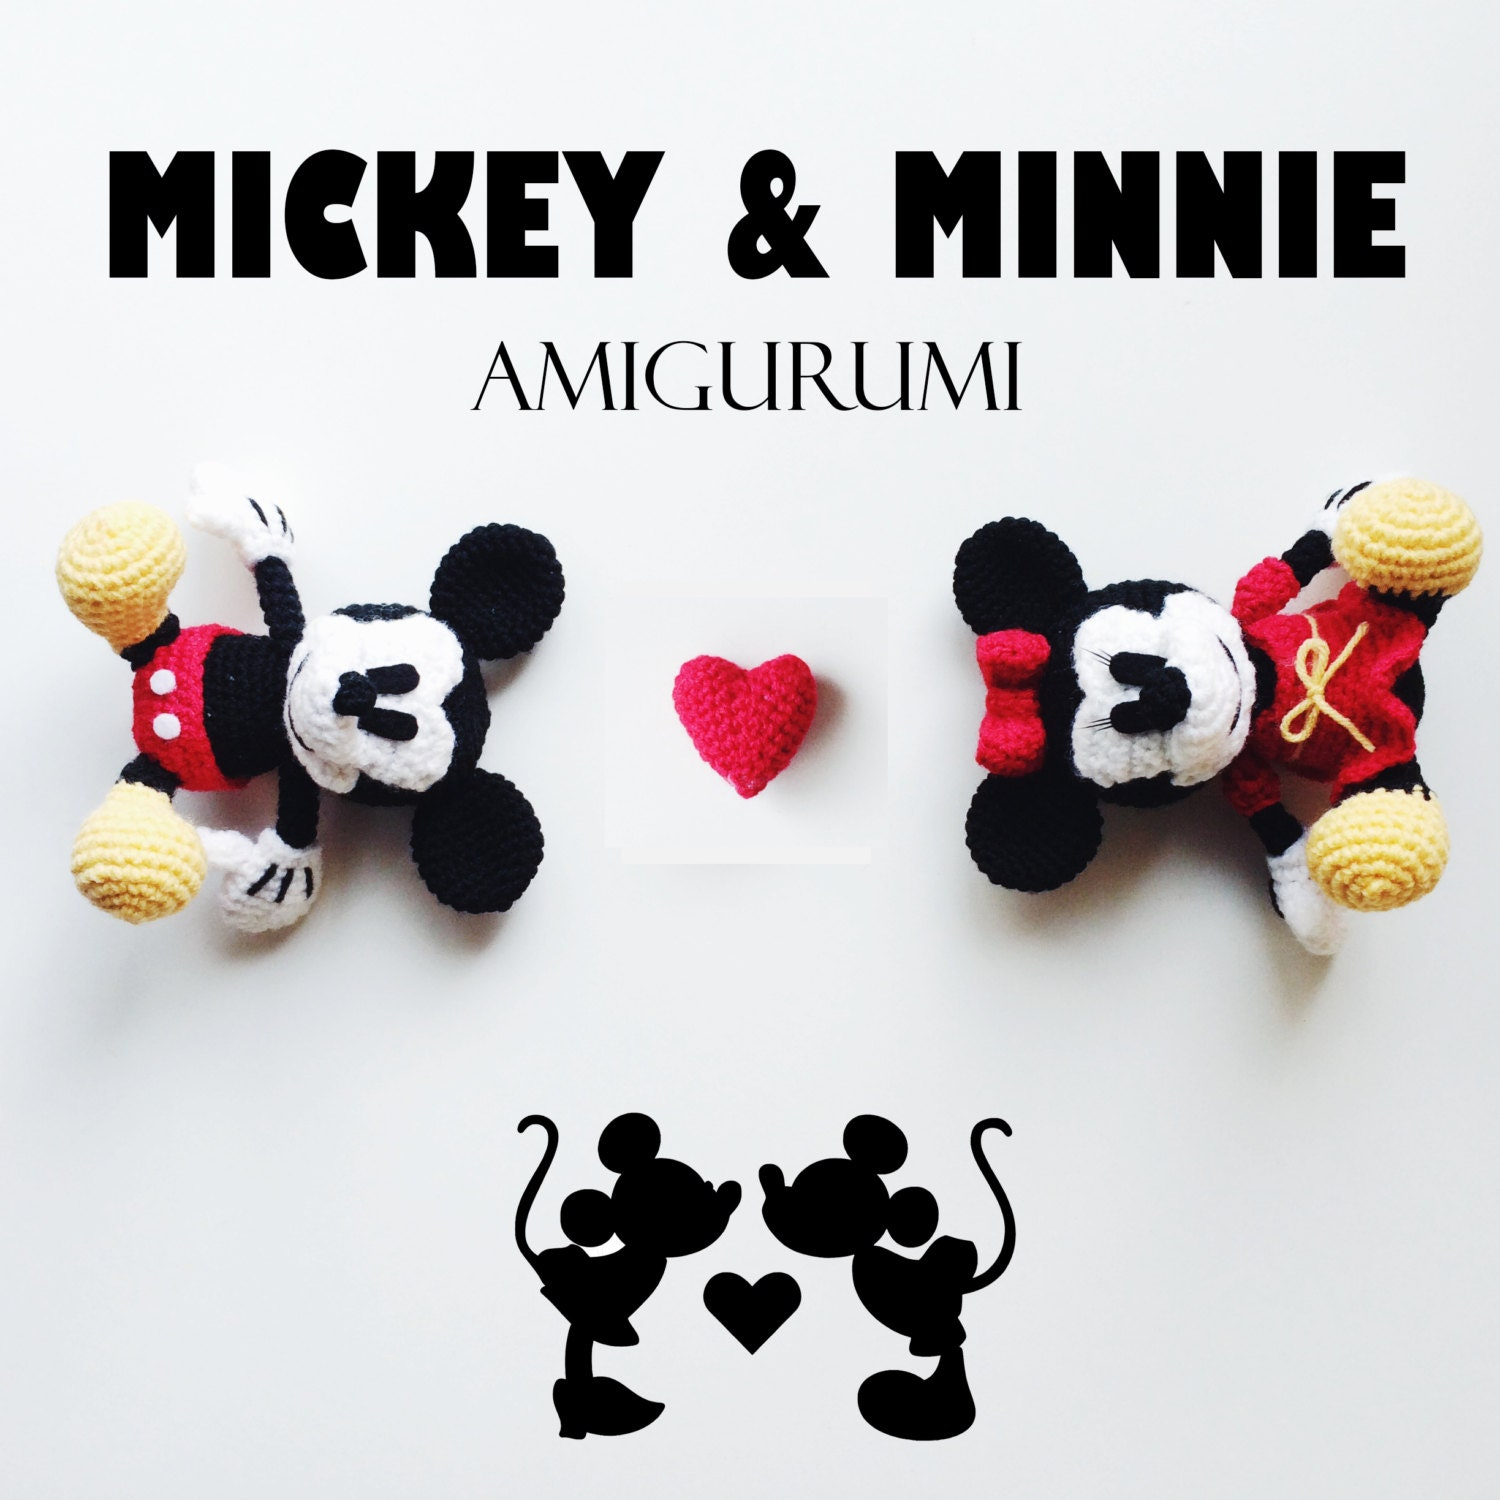 Baby Mickey Amigurumi Pattern : Mickey & Minnie Mouse Amigurumi Crochet Pattern by ...